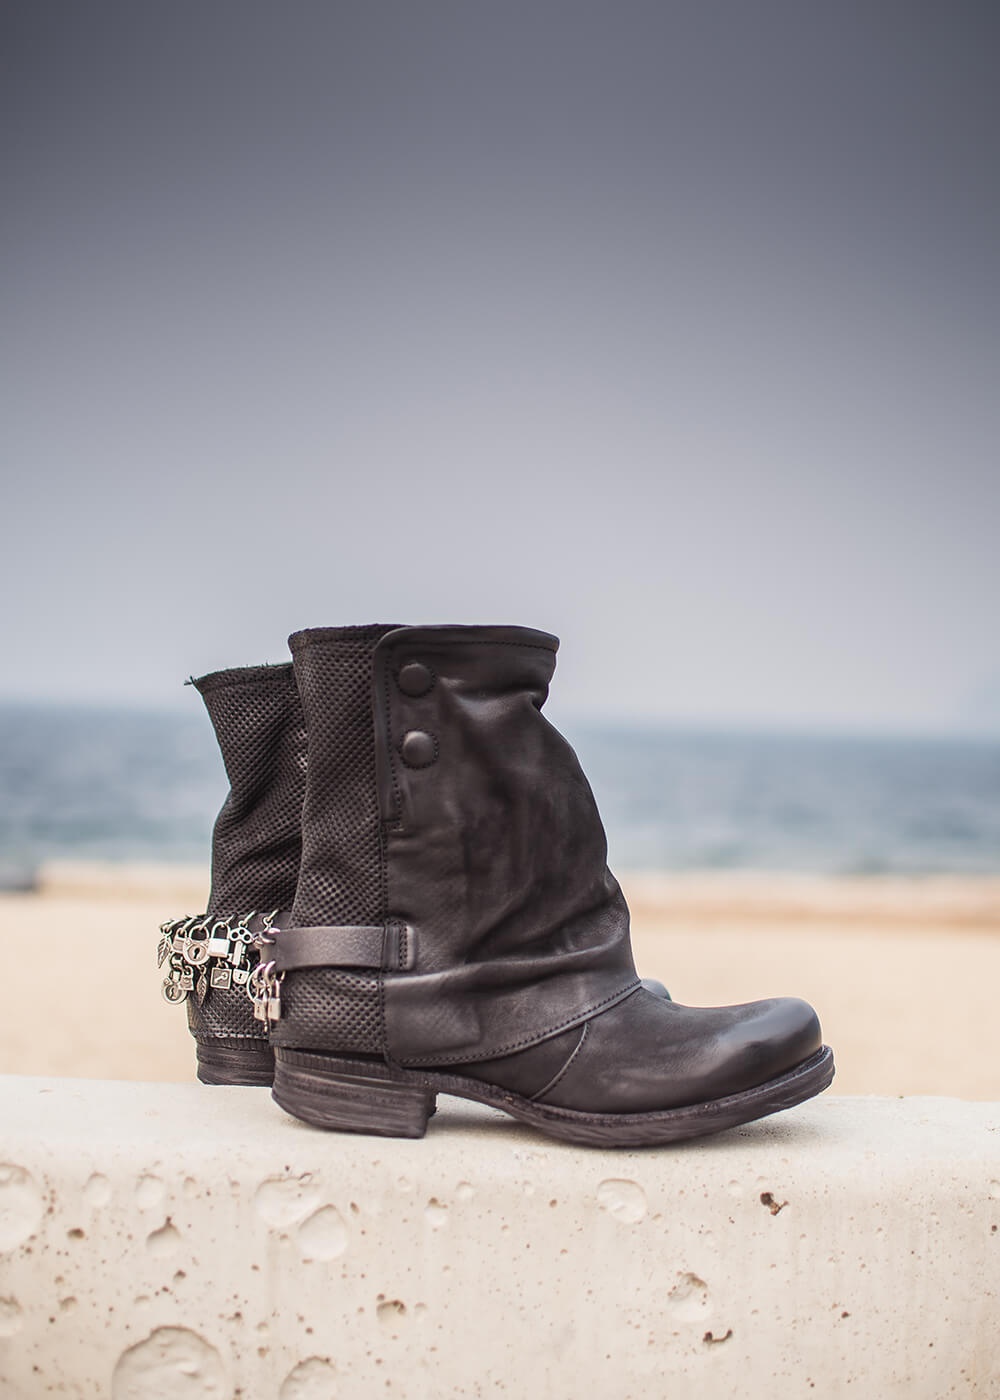 buy popular ef8ba 78776 AS98 Pirate boots (Boho edition)